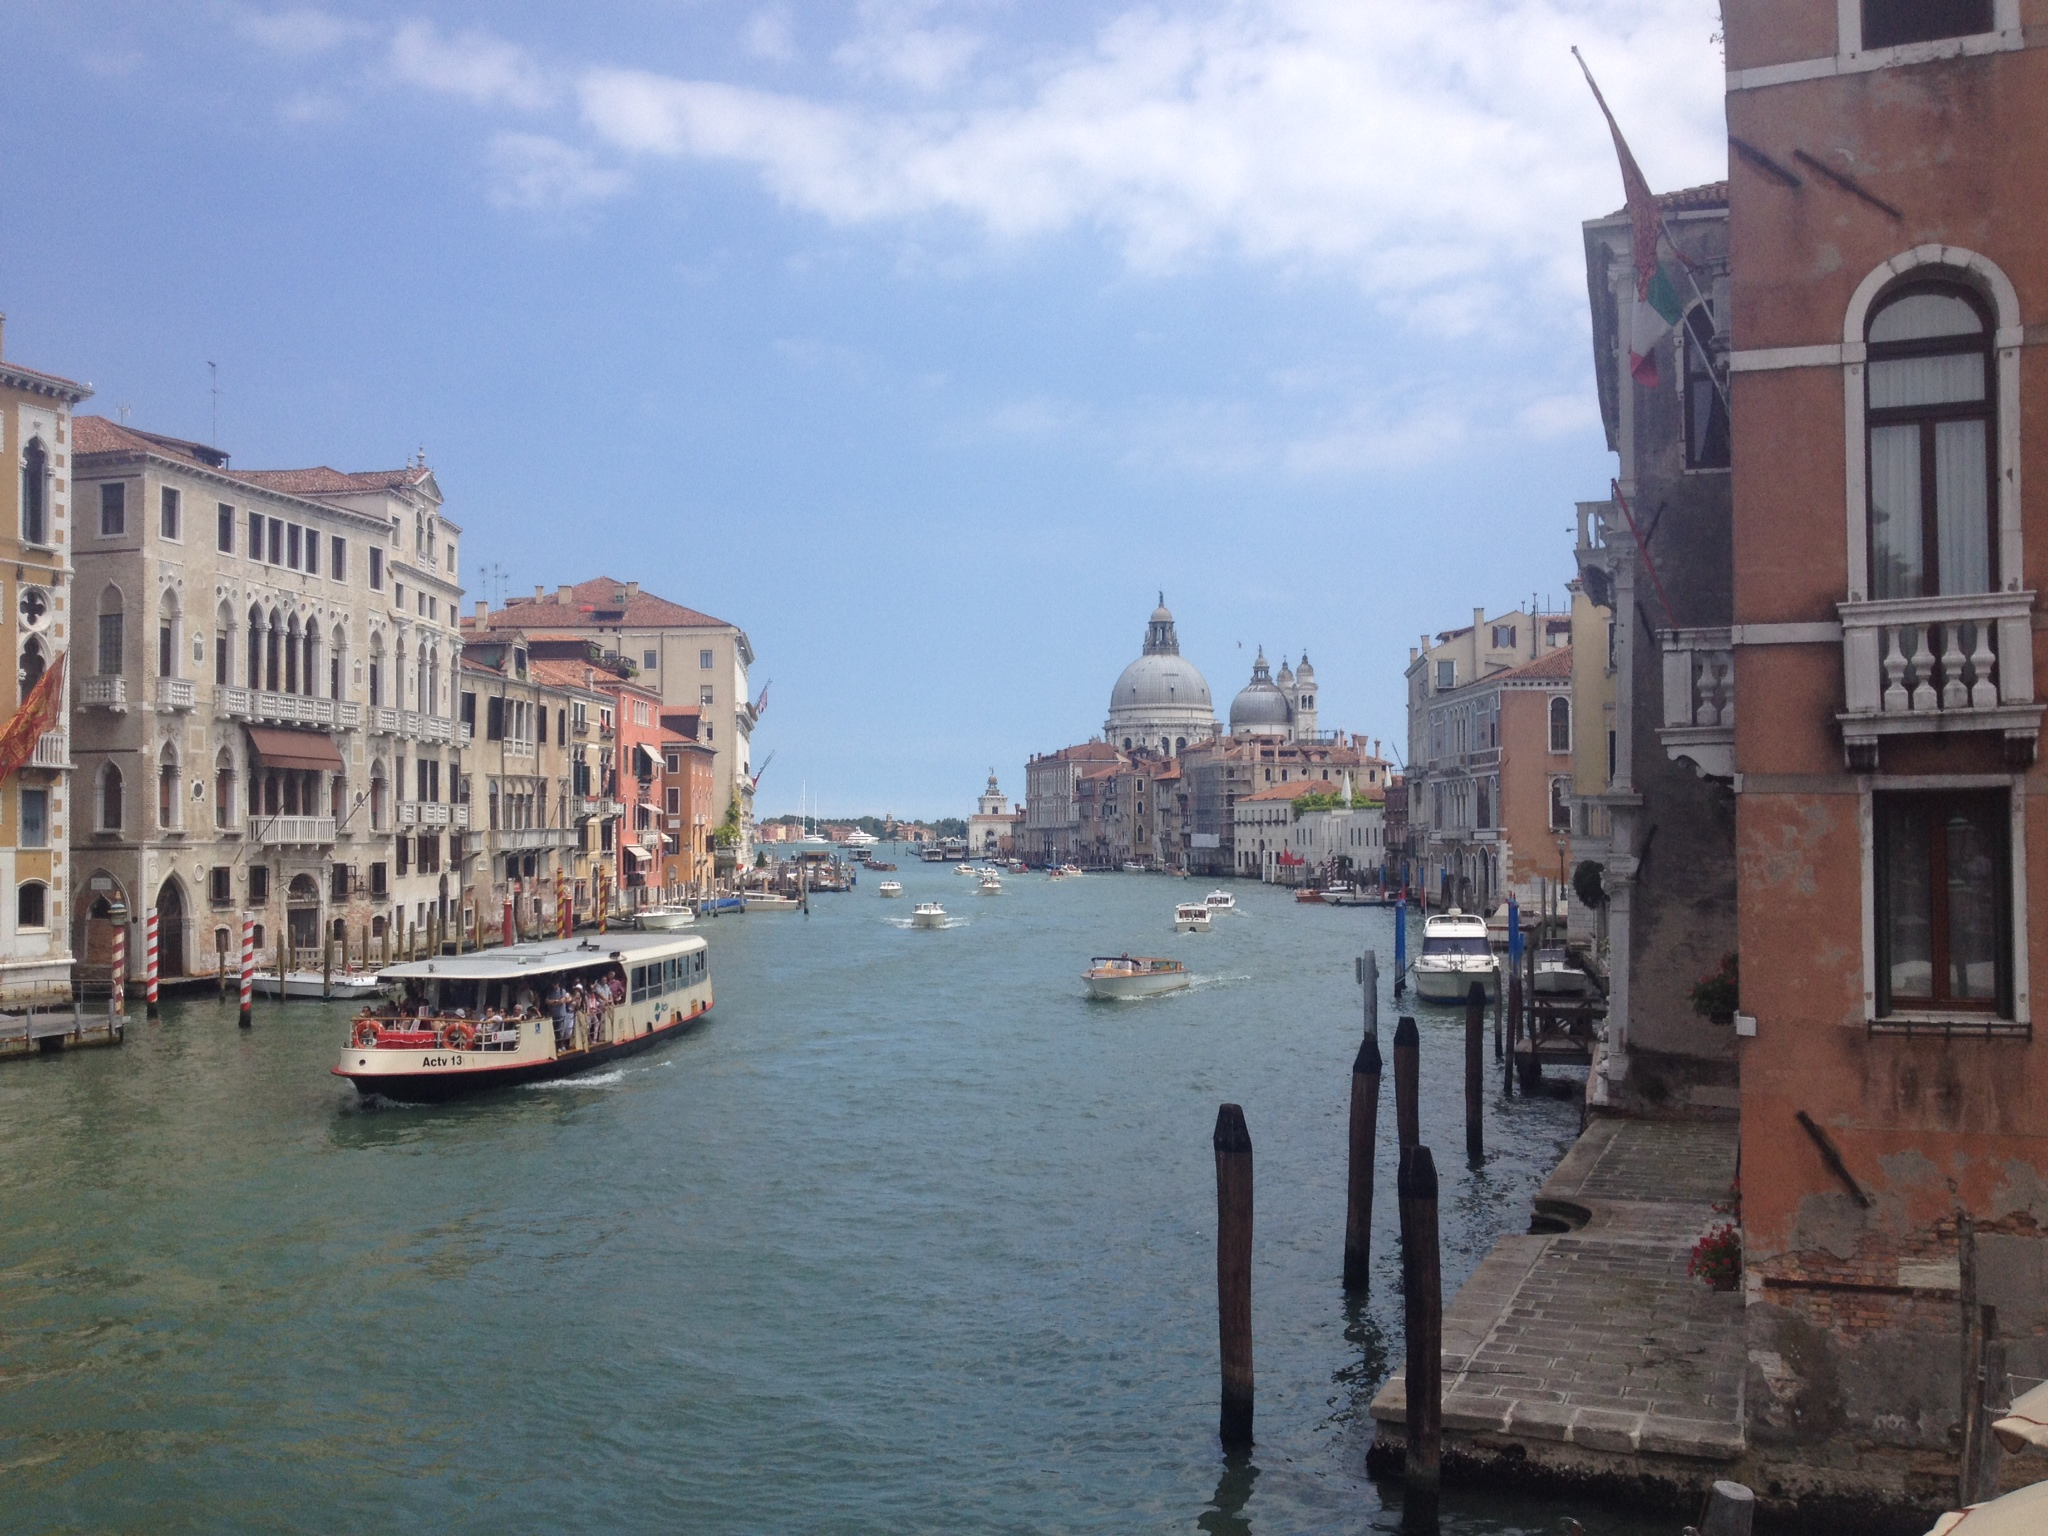 Anything that takes me back to my brief but unforgettable time in Venice is worth a read.